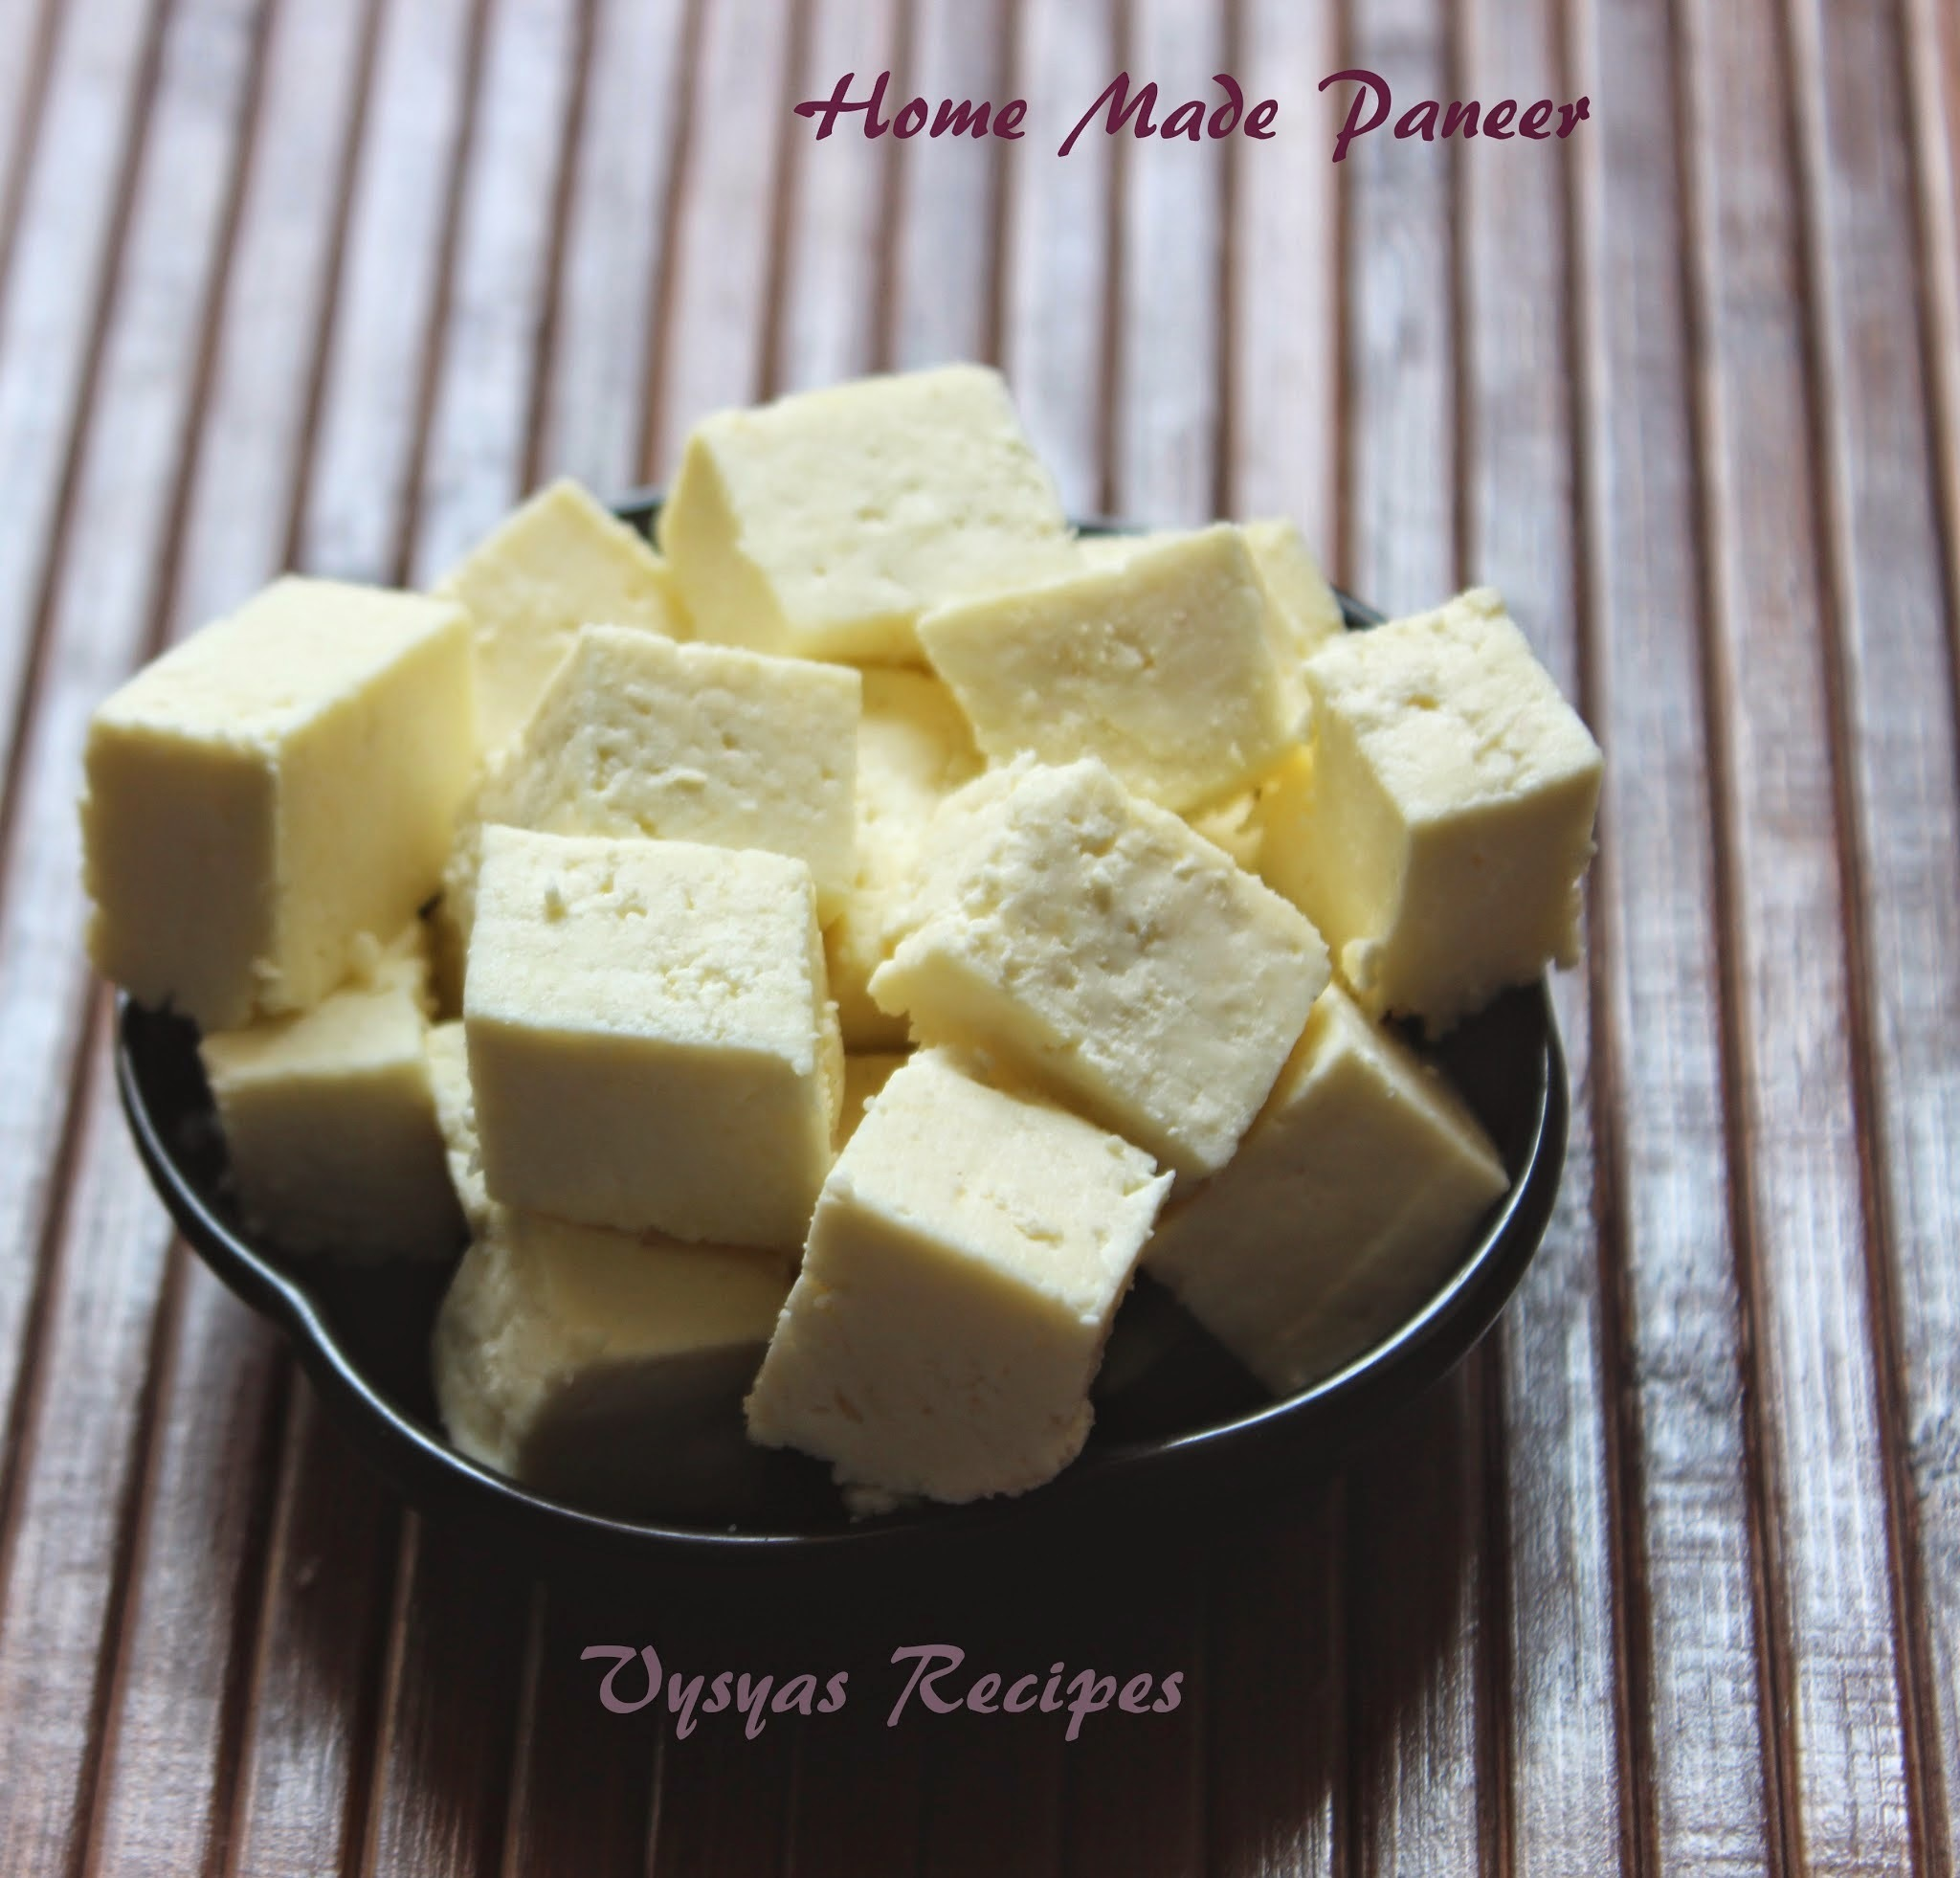 Home made Soft  Paneer - How to make Paneer or Cottage Cheese - With Step Wise Pictures